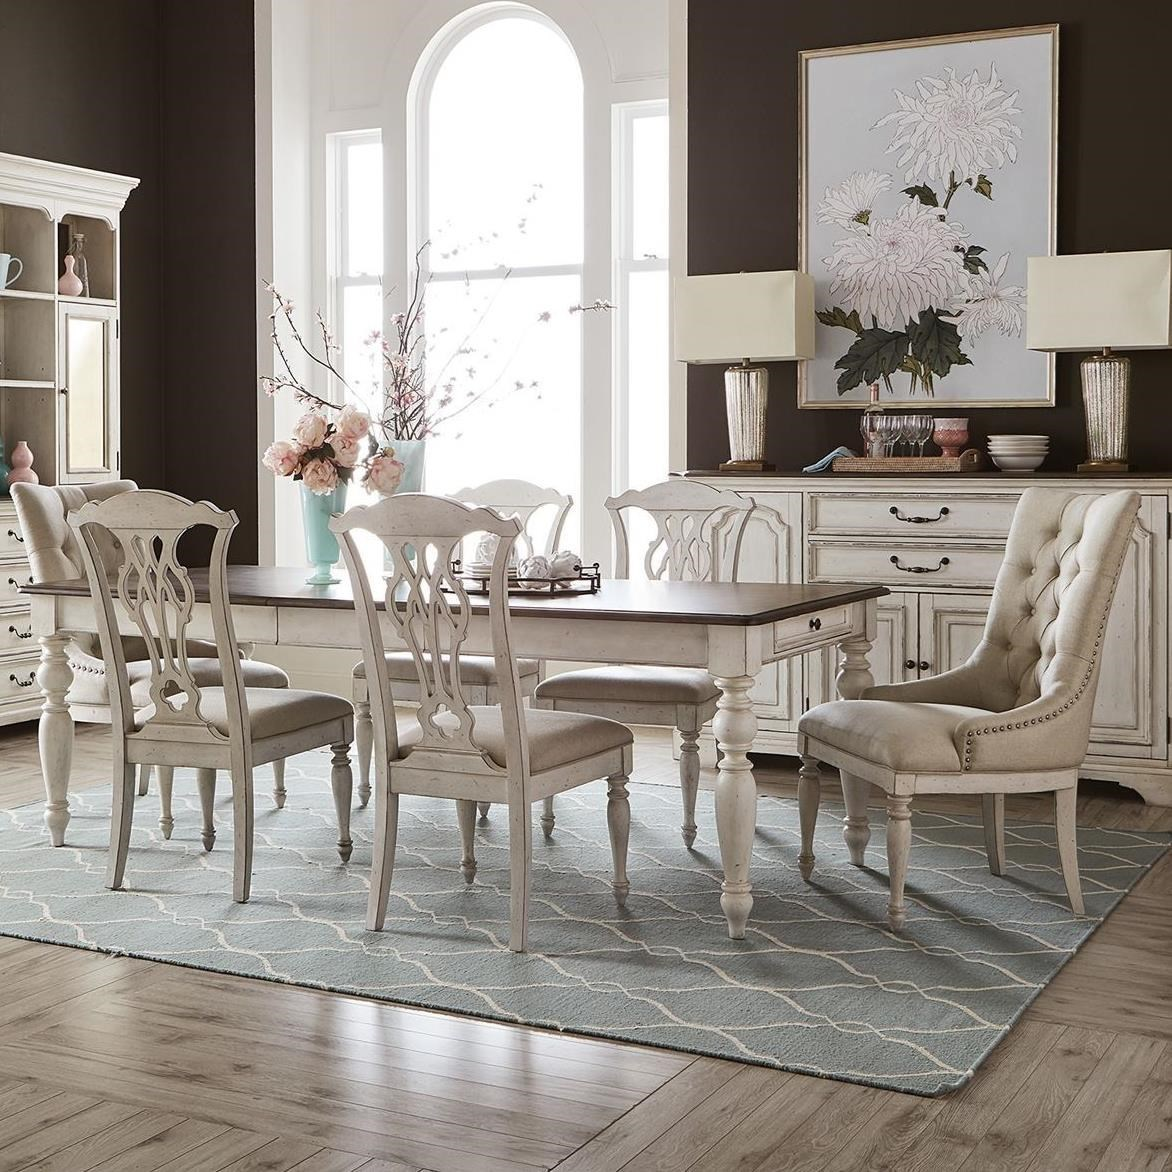 Abbey Road 7-Piece Rectangular Table Set by Liberty Furniture at Factory Direct Furniture